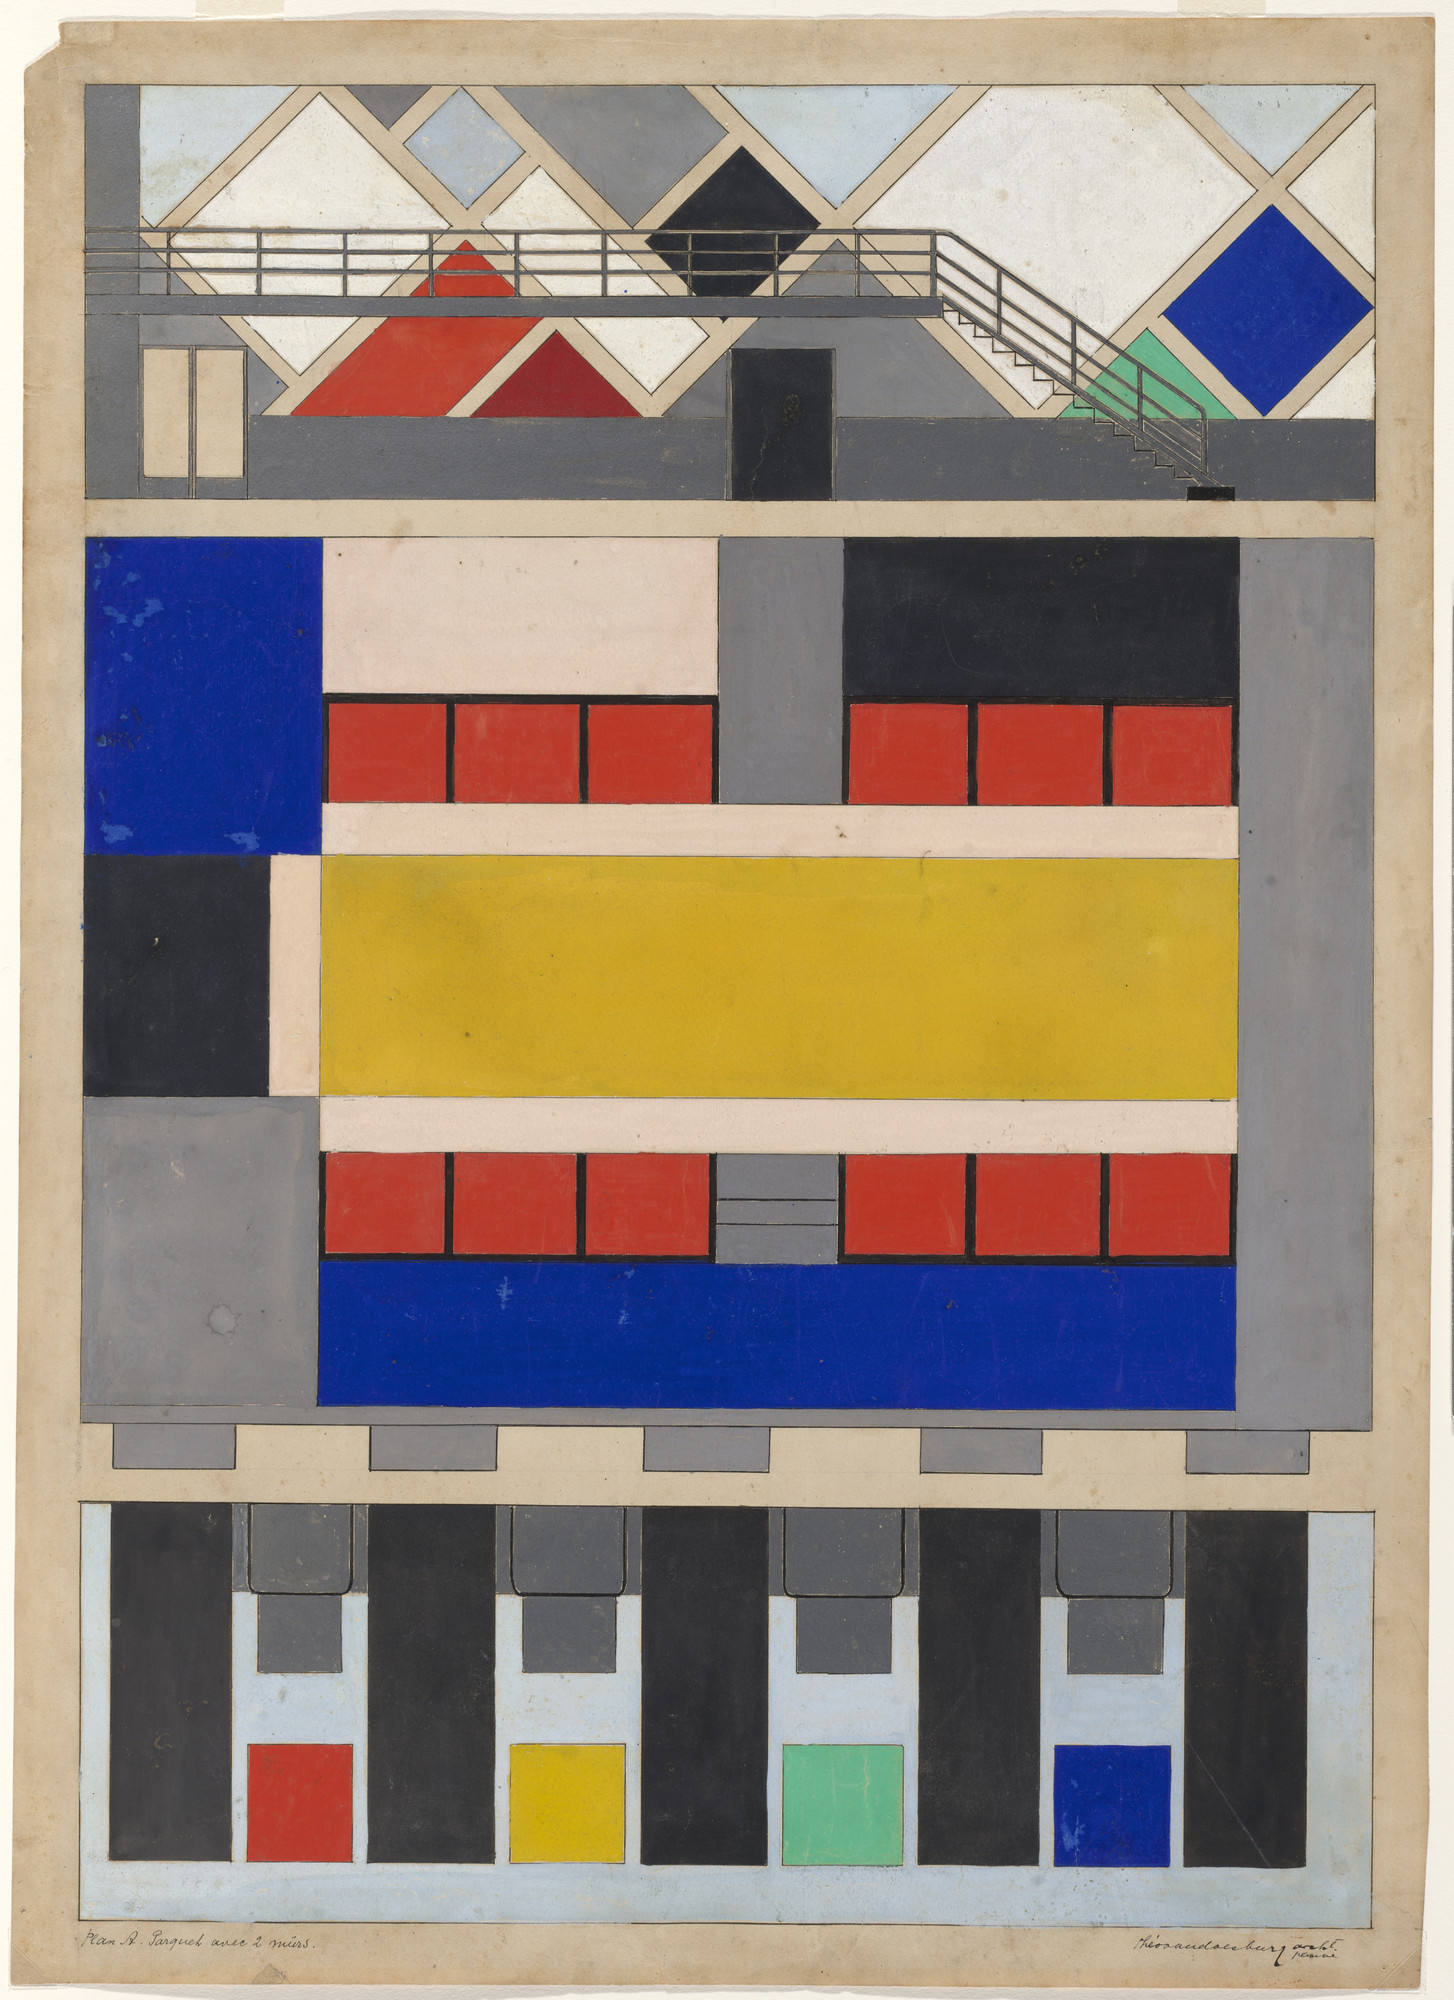 Theo van Doesburg (Christian Emil Marie Küpper). Preliminary color scheme for floor and long walls of dance hall in Café Aubette, Strasbourg, France. 1927